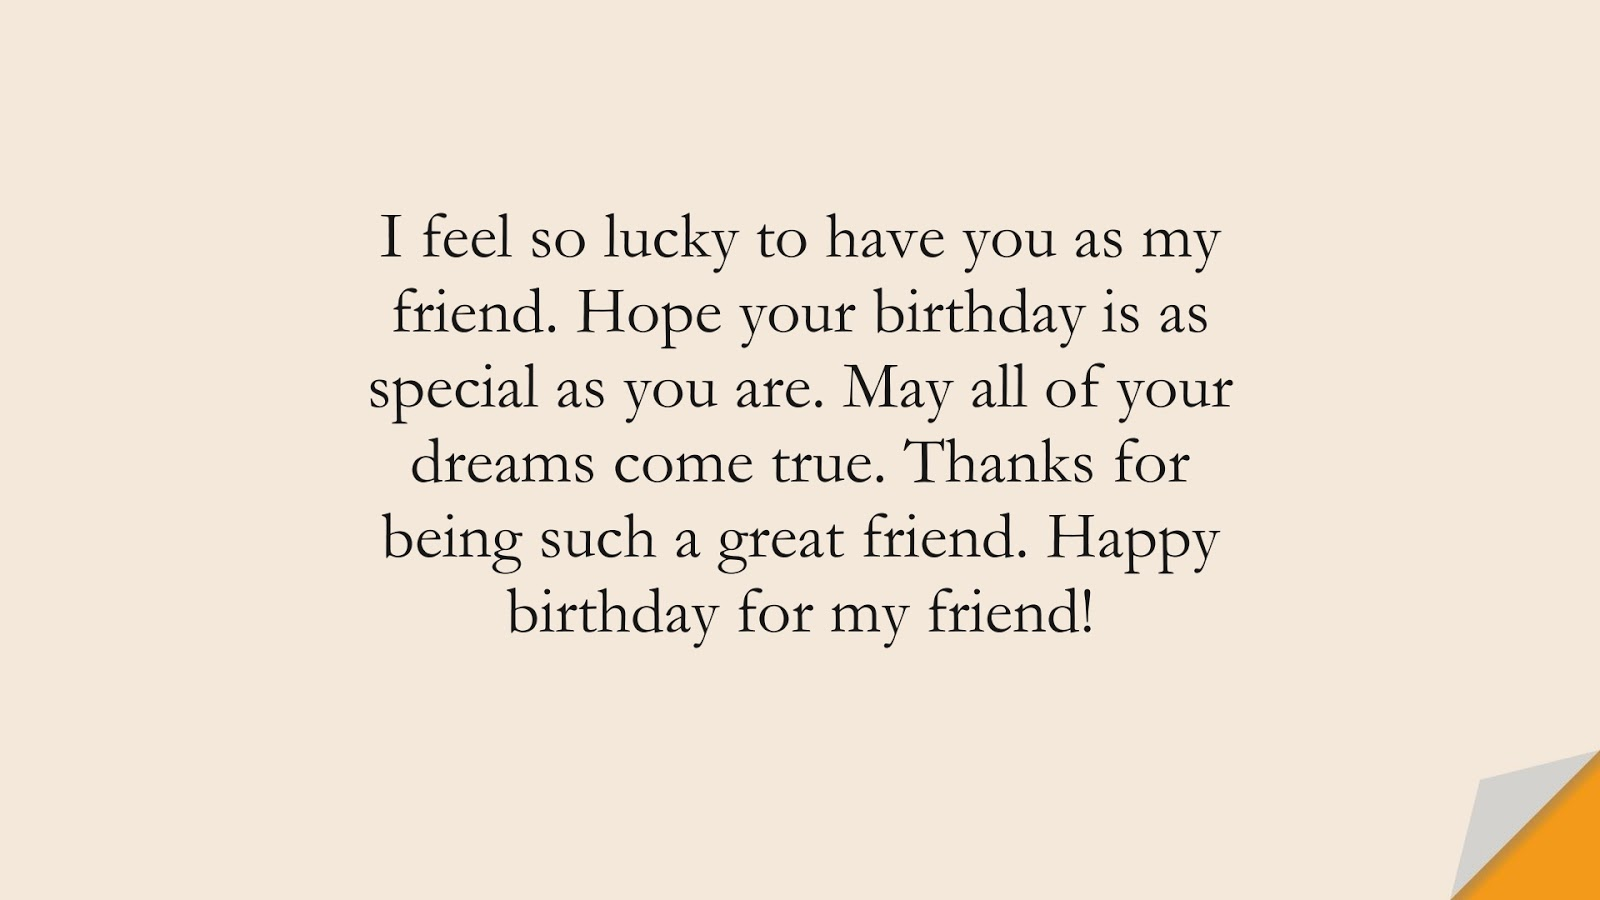 I feel so lucky to have you as my friend. Hope your birthday is as special as you are. May all of your dreams come true. Thanks for being such a great friend. Happy birthday for my friend!FALSE